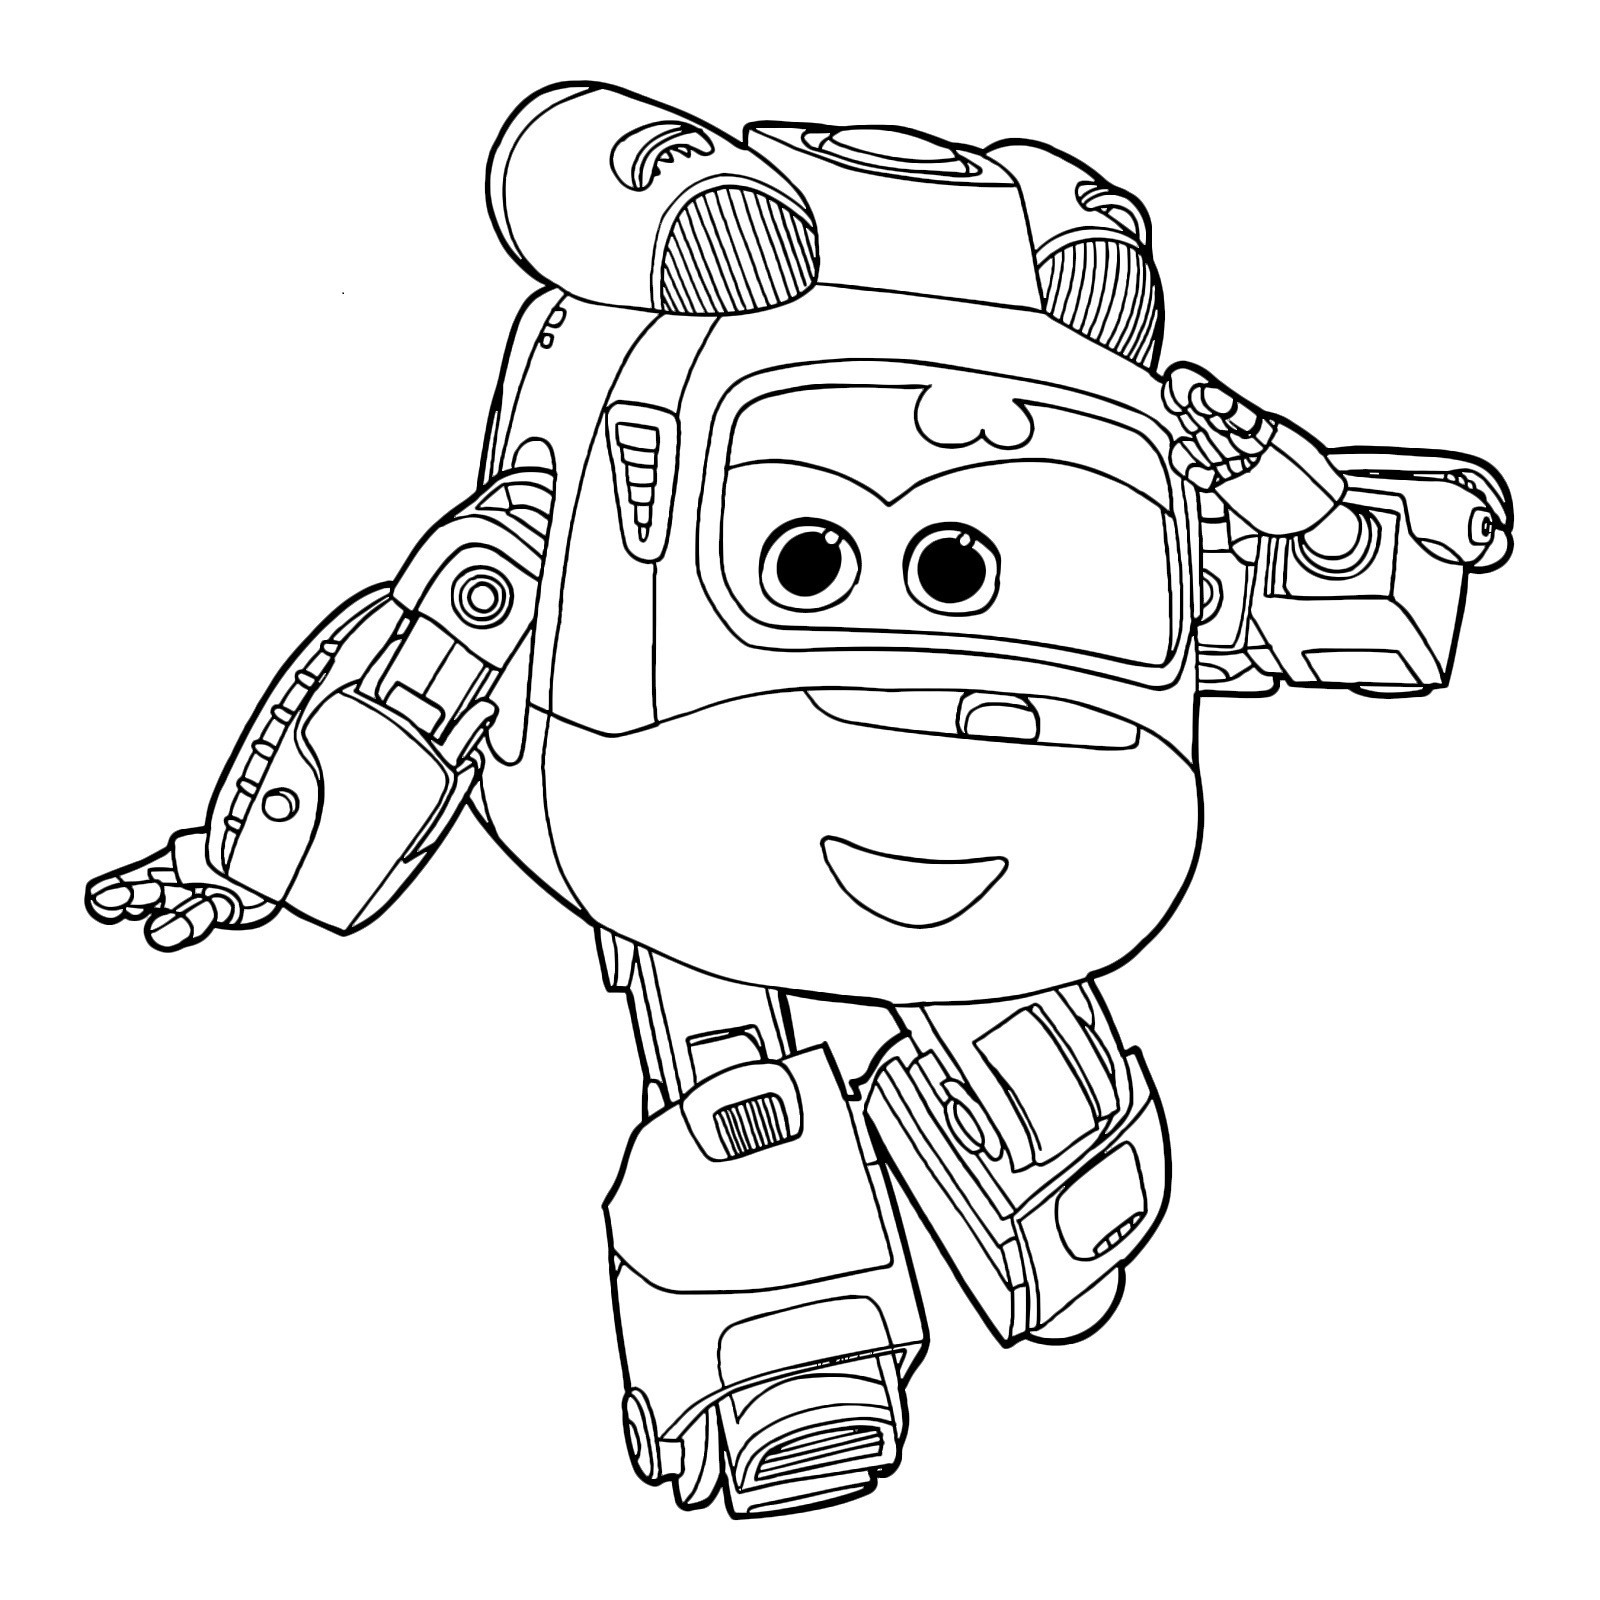 Super Wings Coloring Pages Frisch Super Wings Coloring Pages 28 Collection Of Super Wings Drawing Galerie